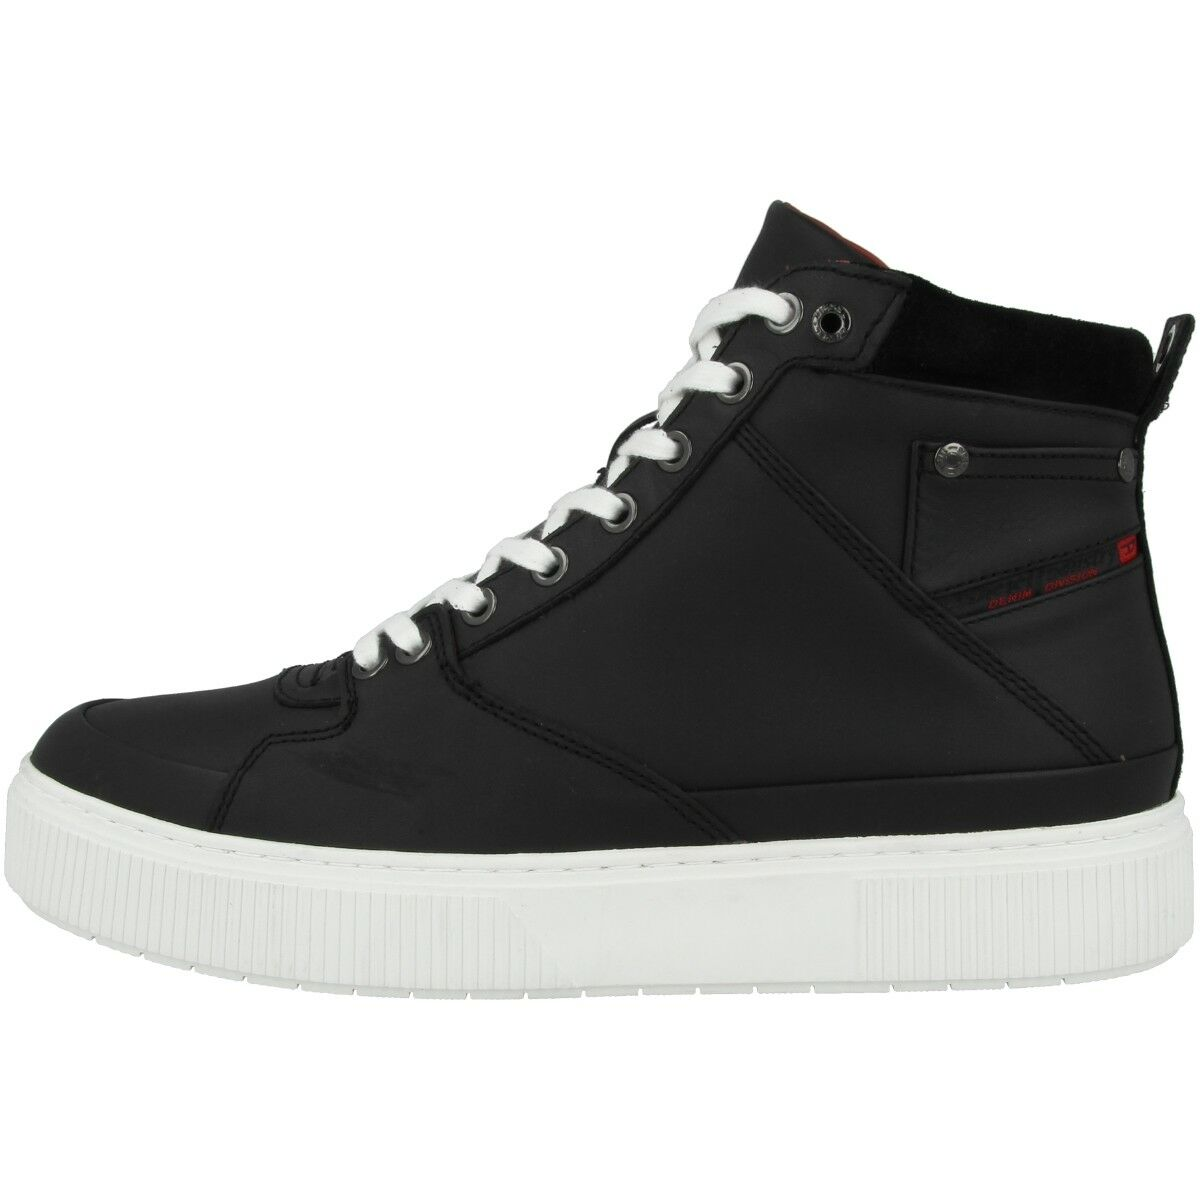 Diesel S-DANNY Mc shoes Retro Casual High Top Sneaker Y01797-PR131-T8013